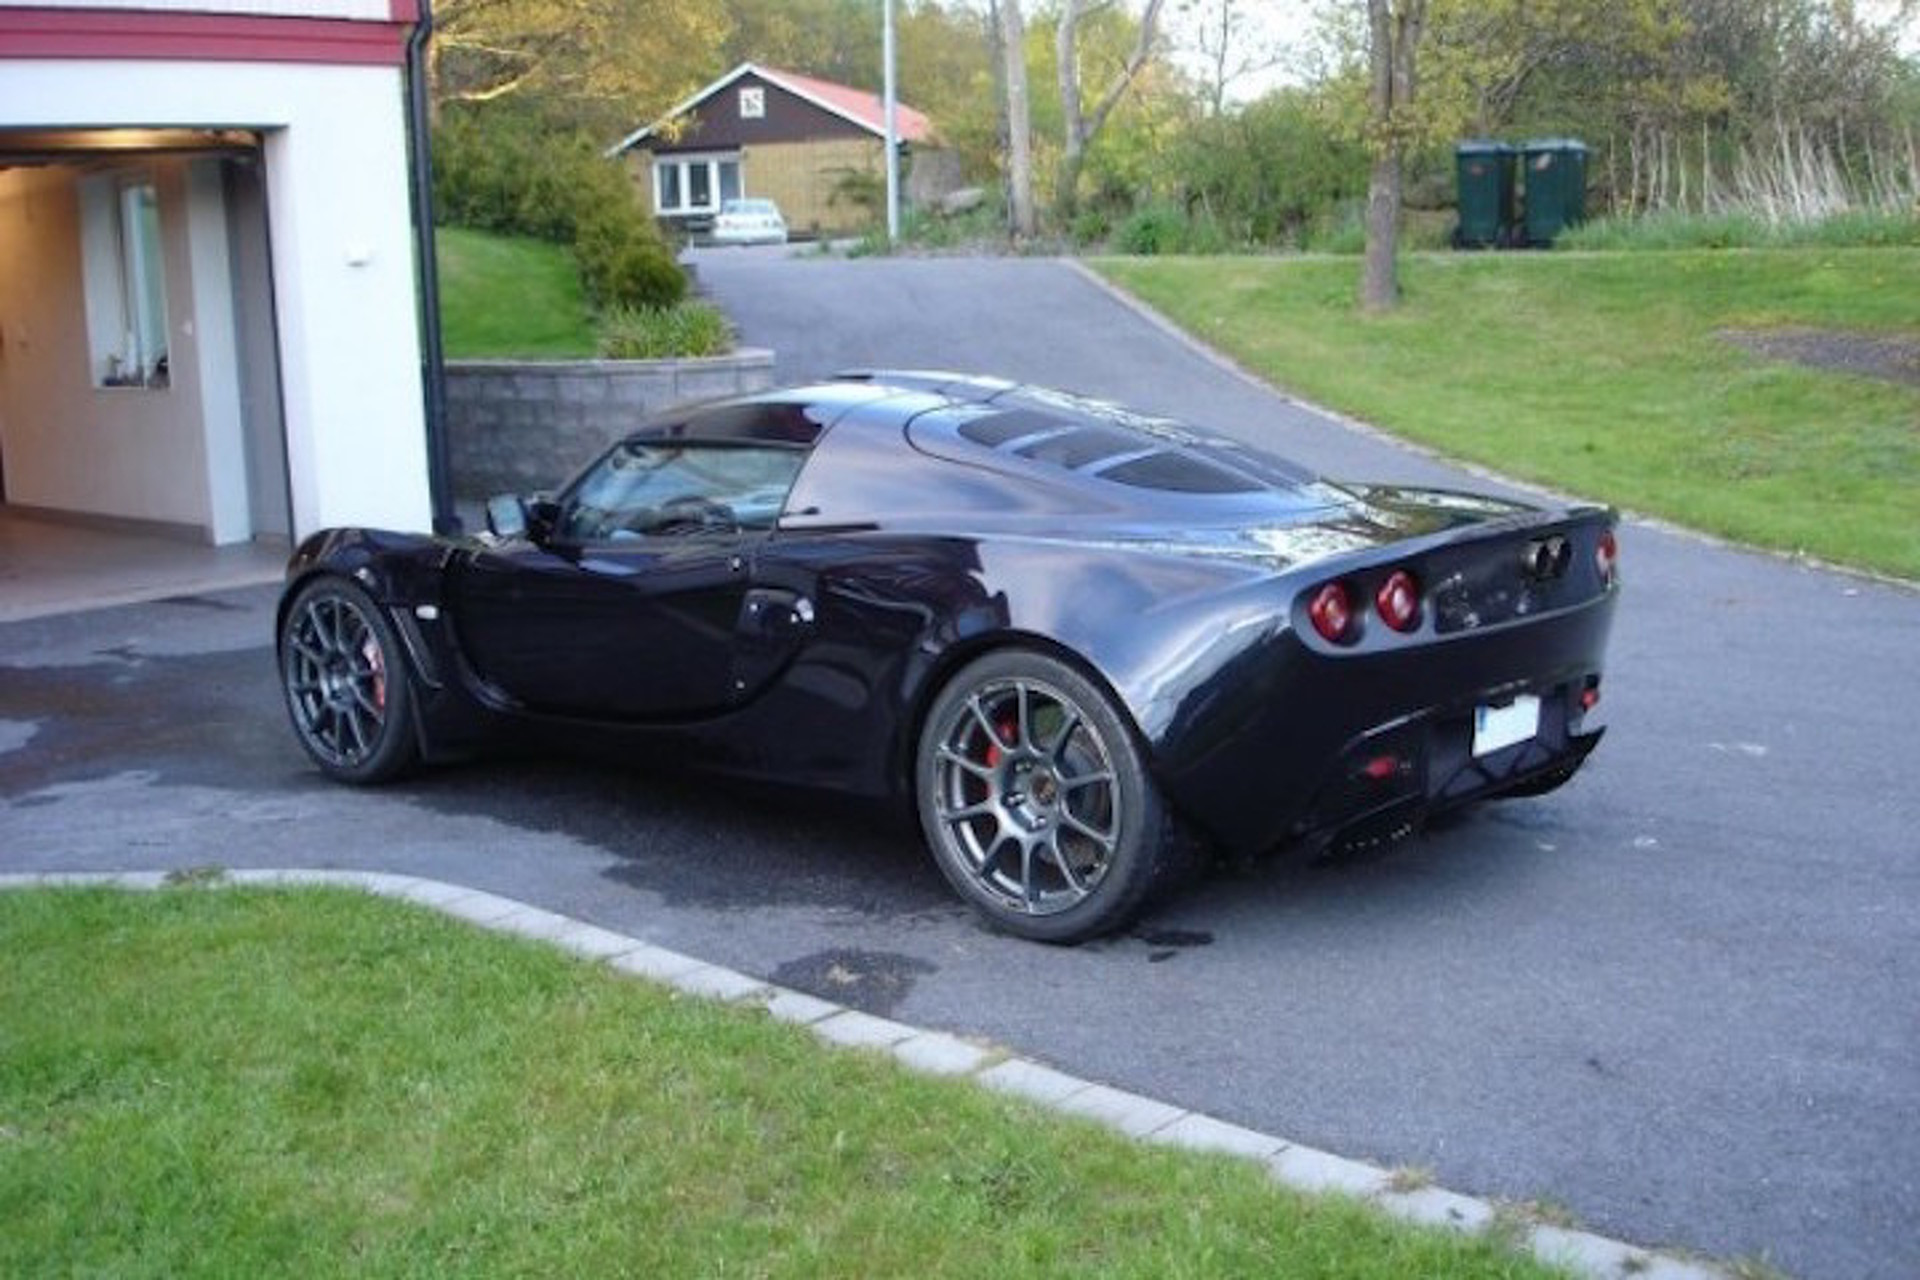 This Is What a Lotus Exige With a BMW V10 Looks Like